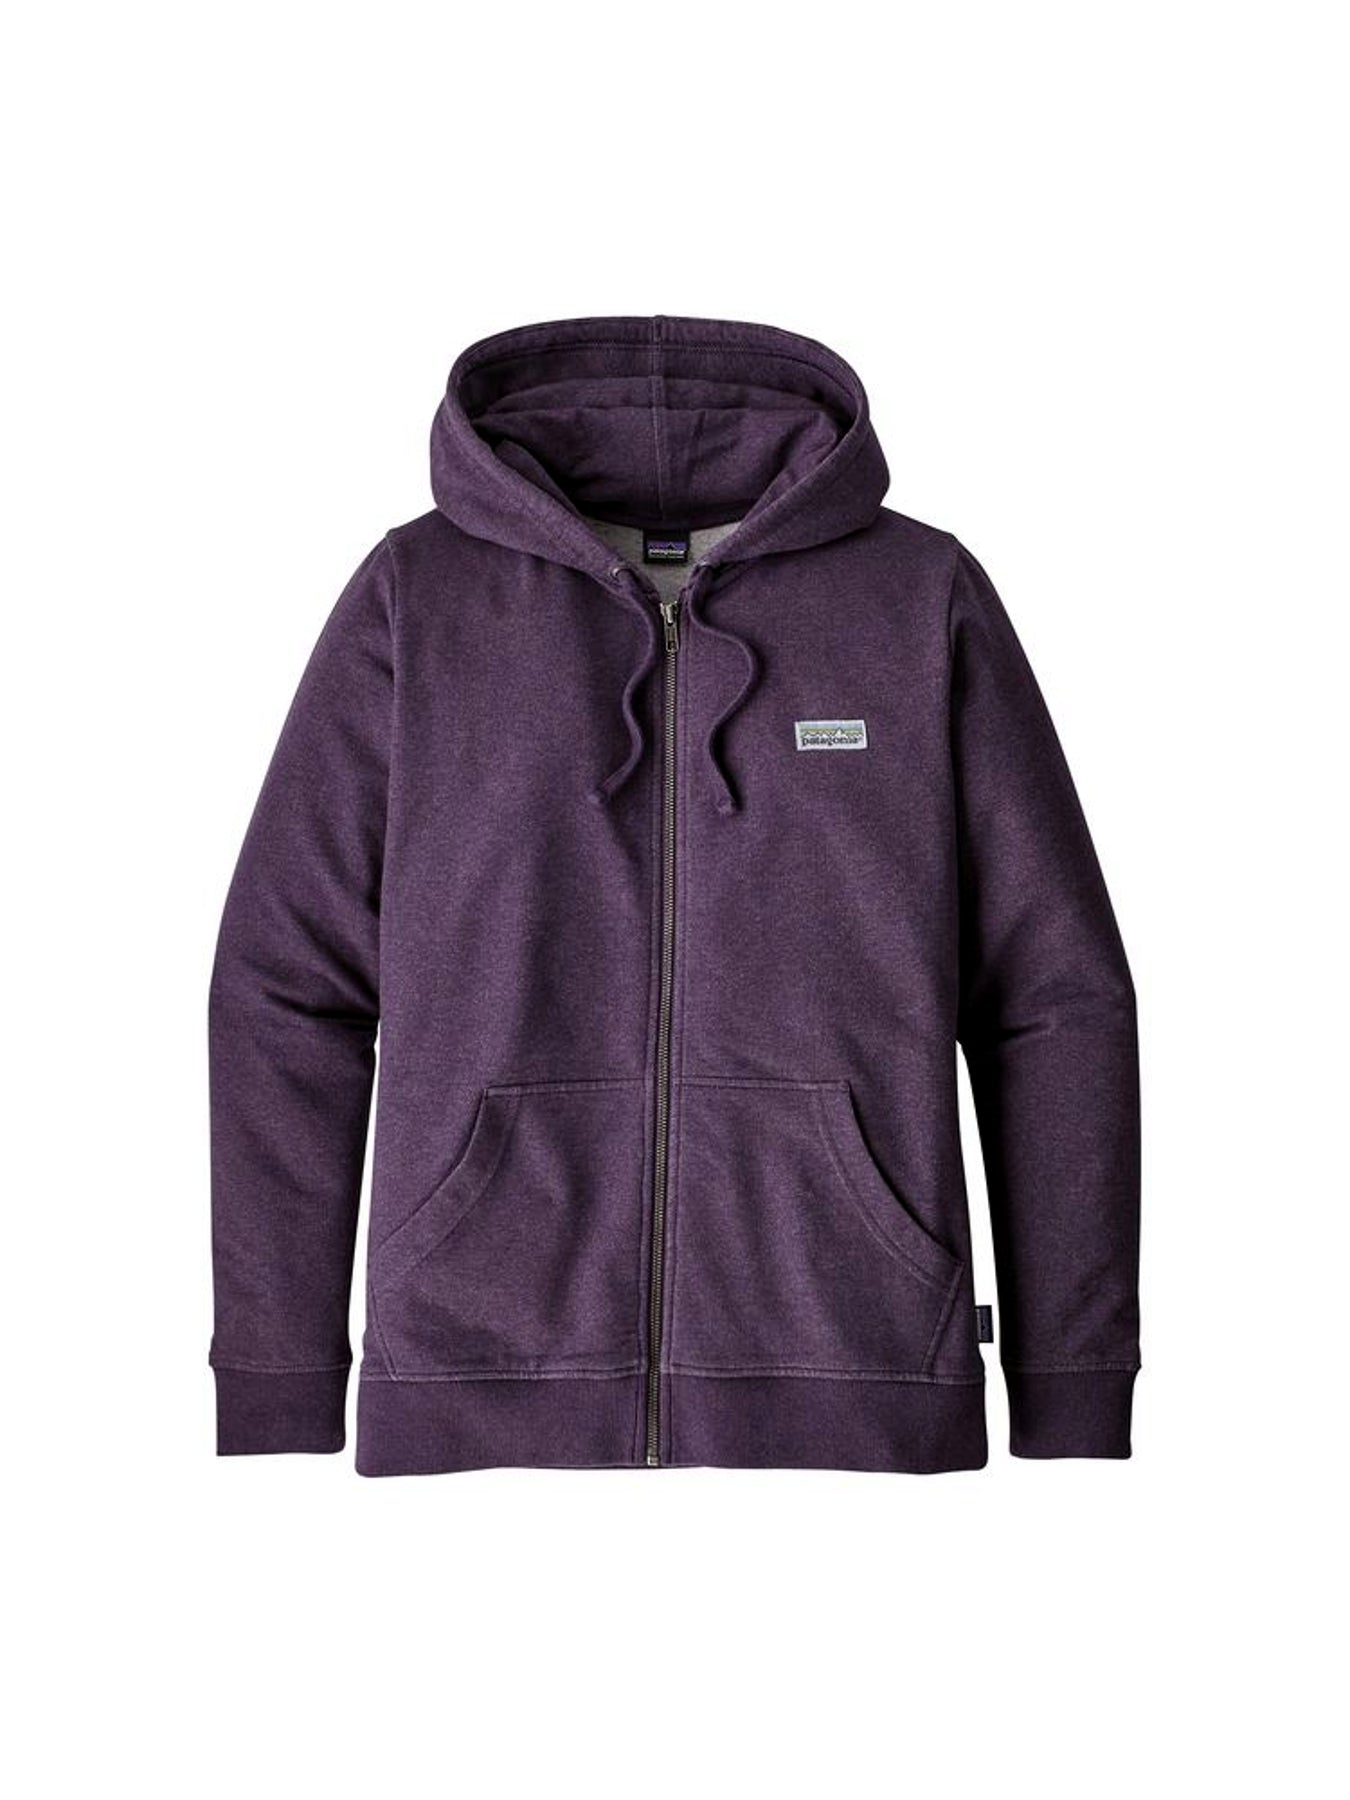 dc9e362e Fit Guide Dolomite Blue Feather Grey Piton Purple Size Chart Fit Guide  Dolomite Blue. Home — Patagonia Women's Pastel P-6 Label Midweight Full-Zip  Hoody